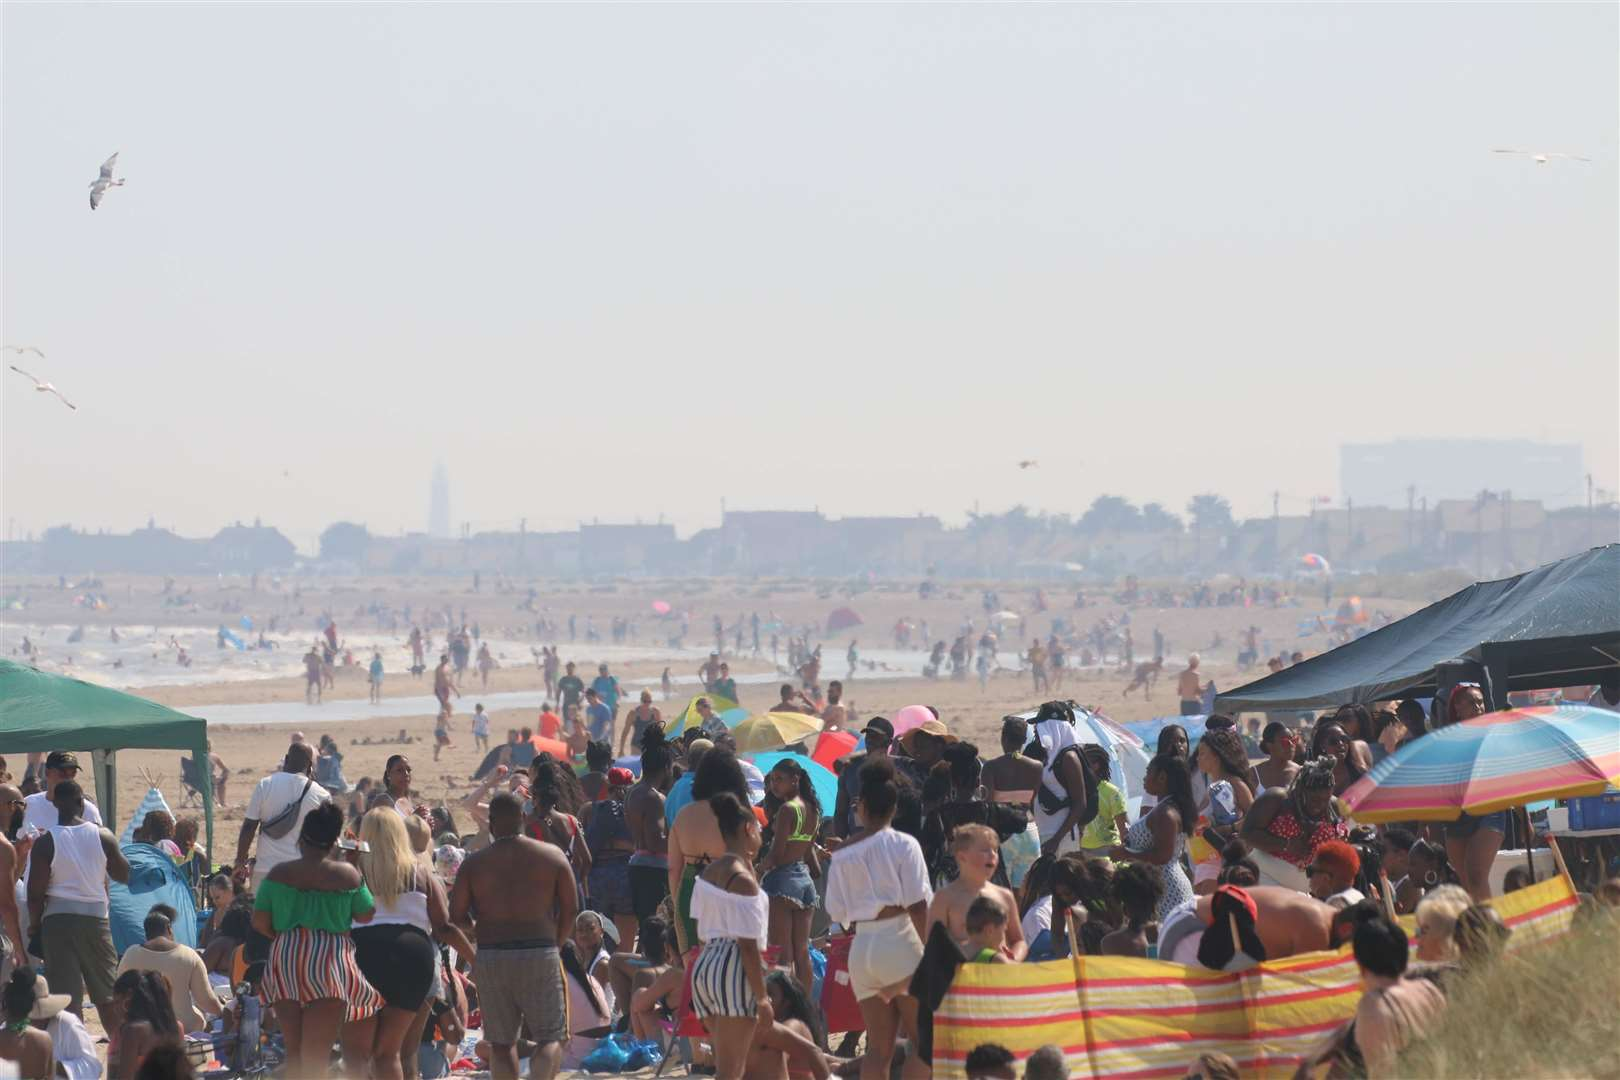 Thousands of people took to Greatstone beach as part of a pre-planned 'beach cookout' on Sunday